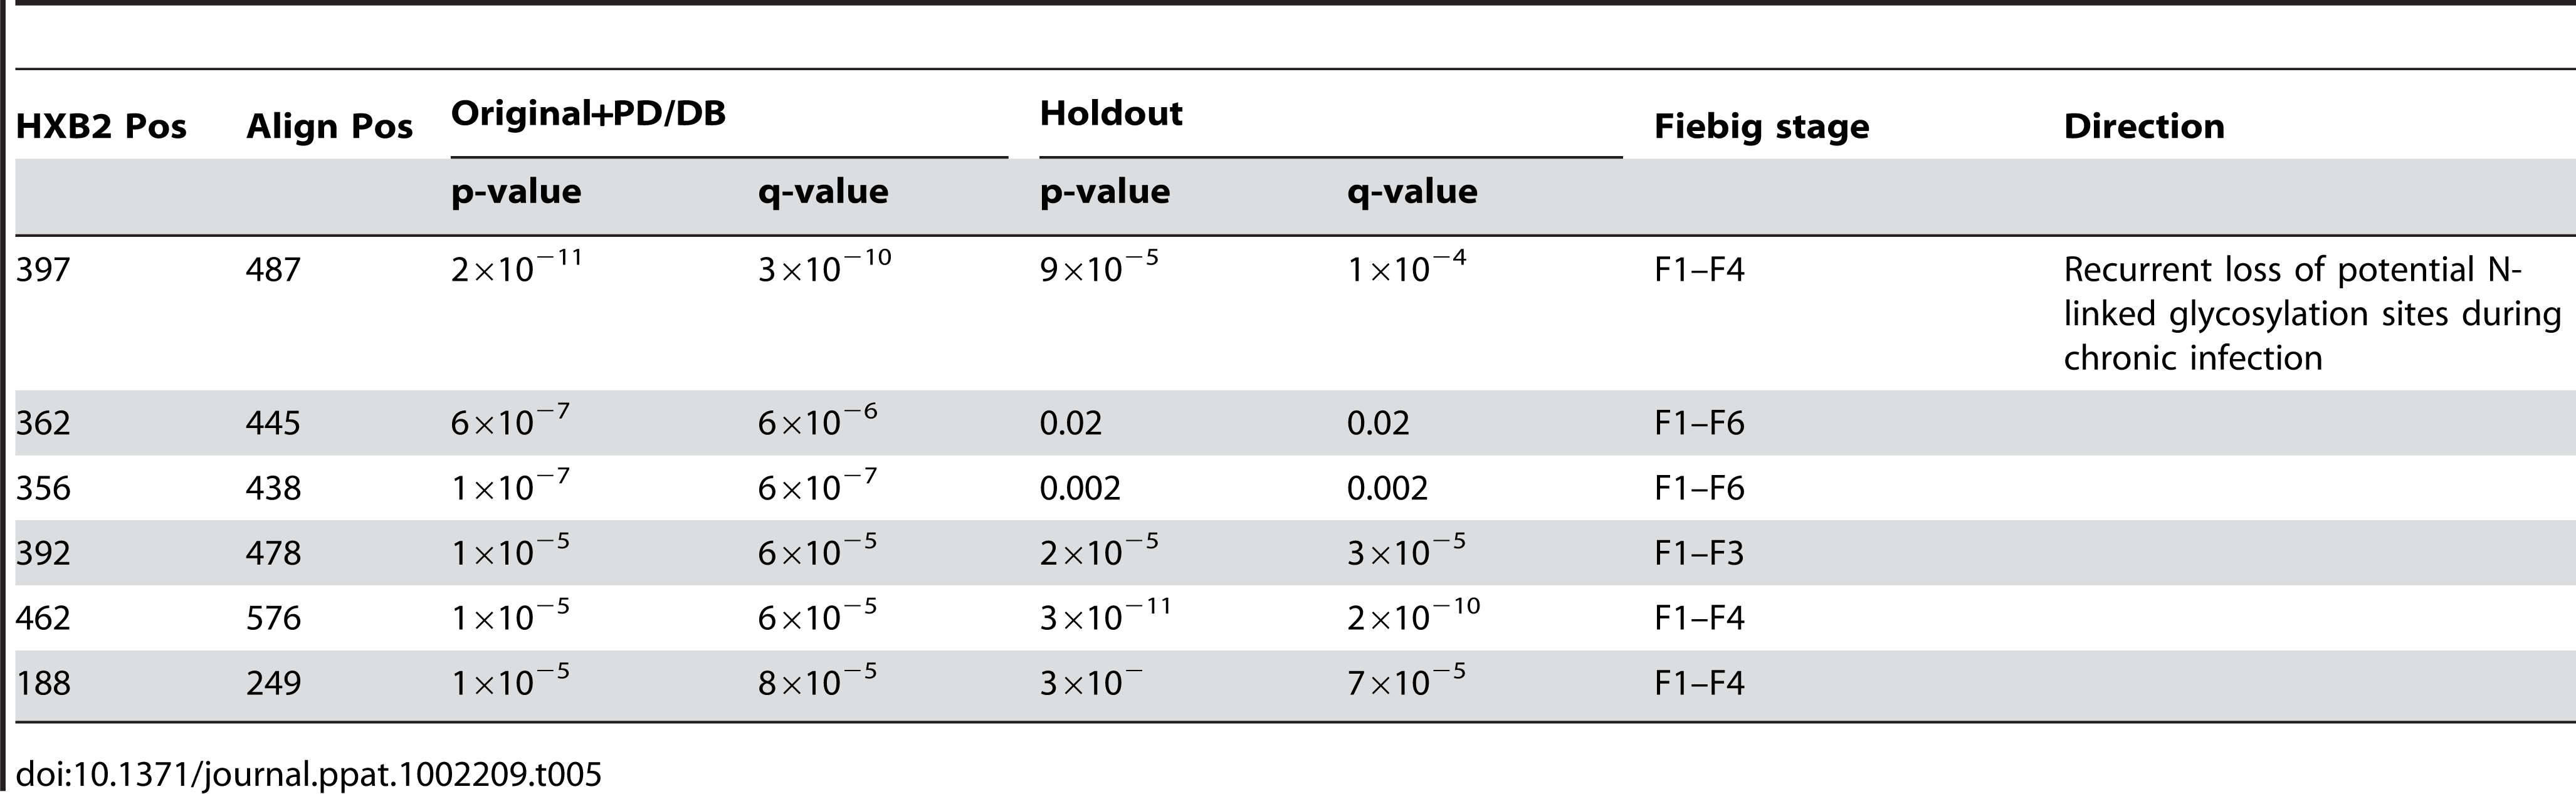 Summary statistics using the combined original and PD/DB sets and holdout set to the gain or loss of PNLGs, defined as the motif NX[ST], where N is Asp, X is any amino acid besides Pro, and [ST] is a Ser or Thr.